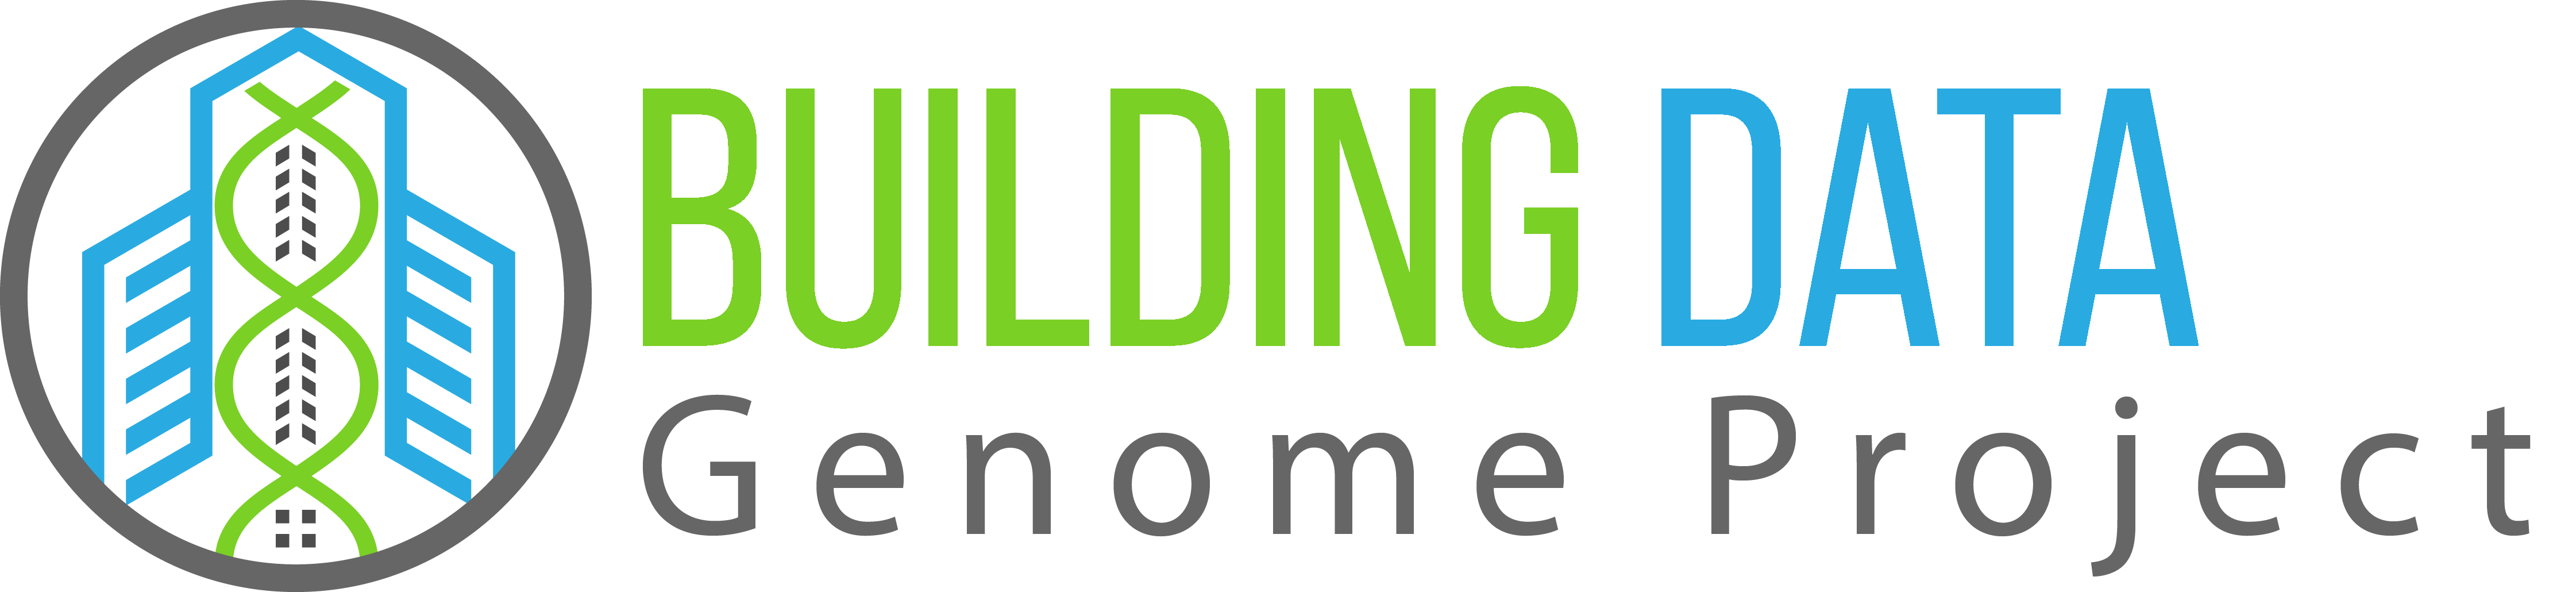 building data genome logo